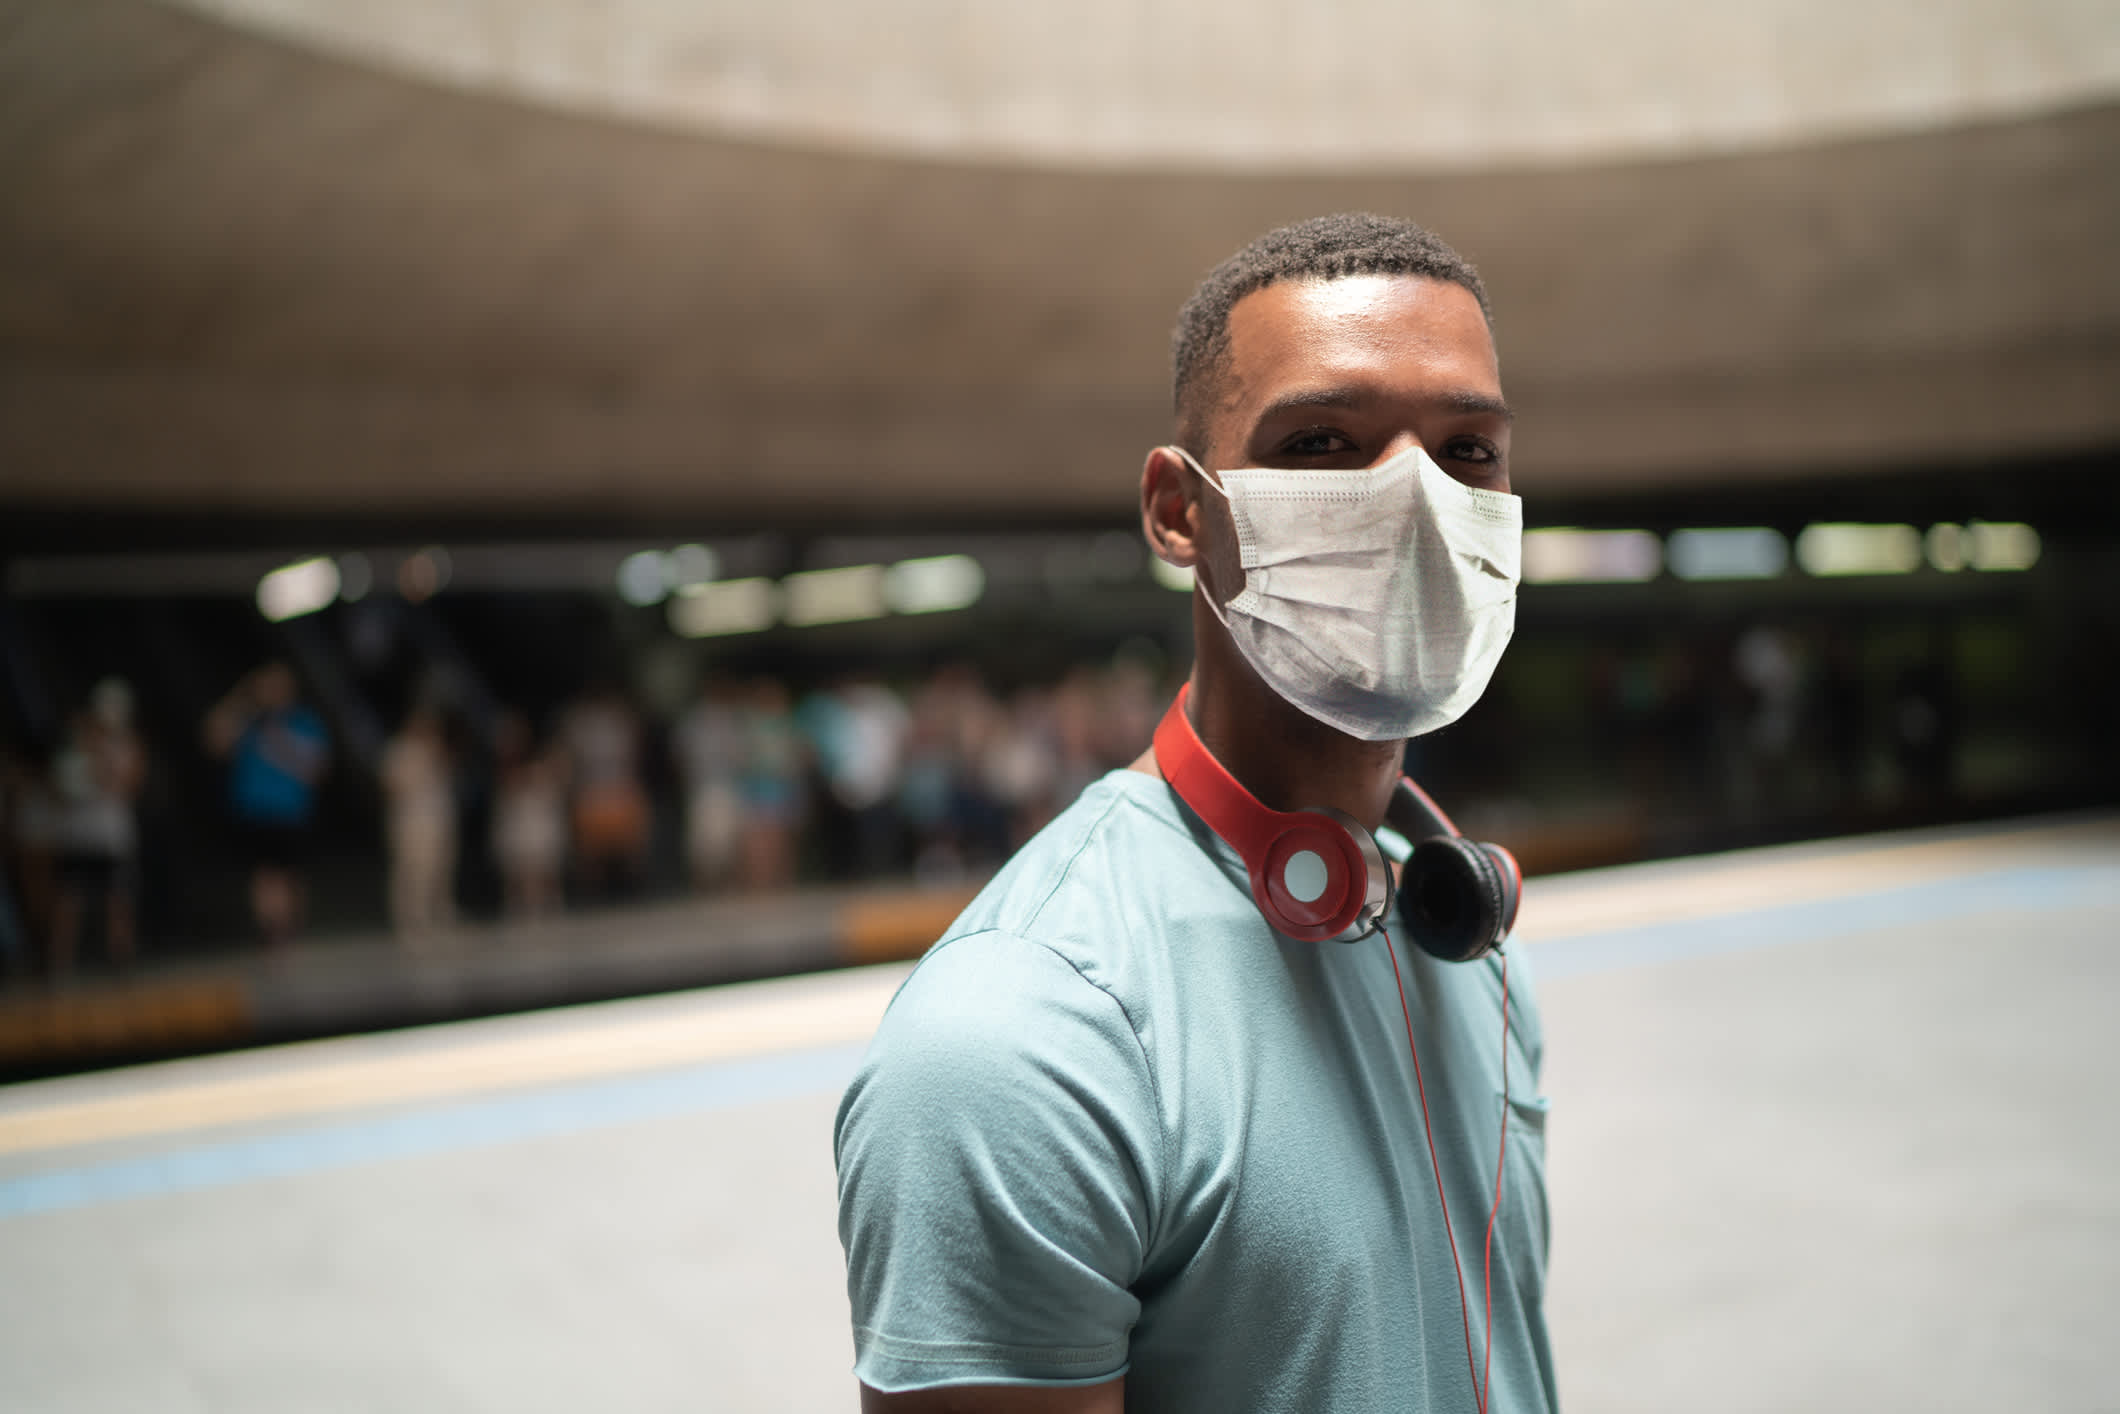 If everyone wears a mask, 58% of Covid-19 deaths could be prevented by fall, study says - CNBC